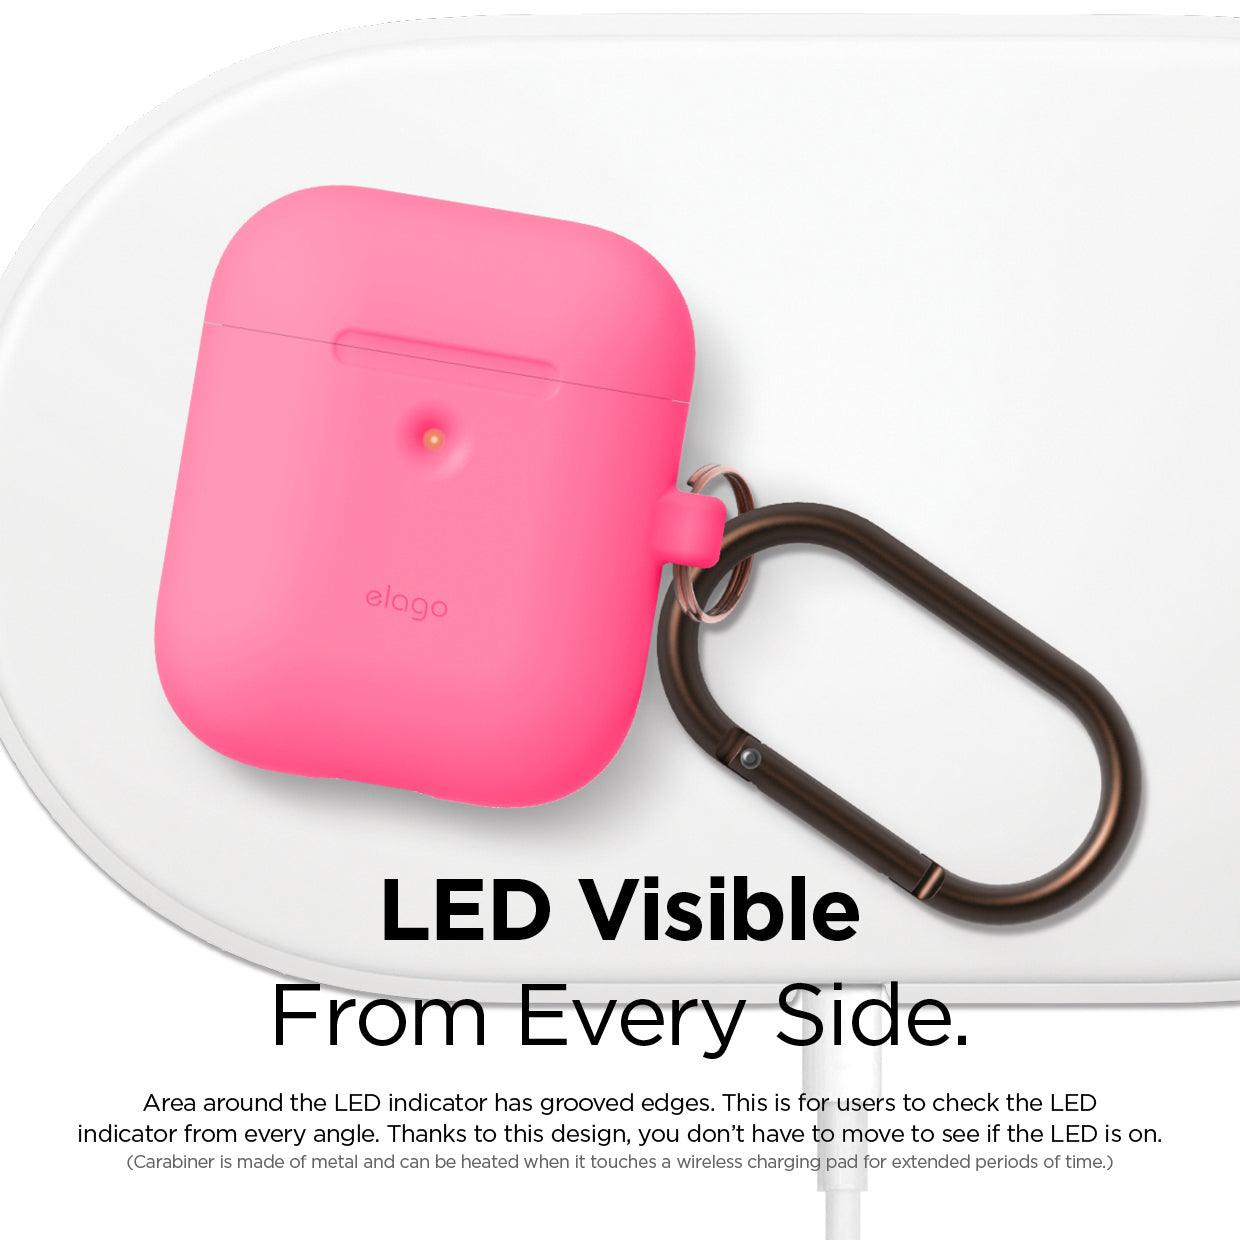 Elago 2nd Generation Airpods Silicone Hang Case - Neon Hot Pink